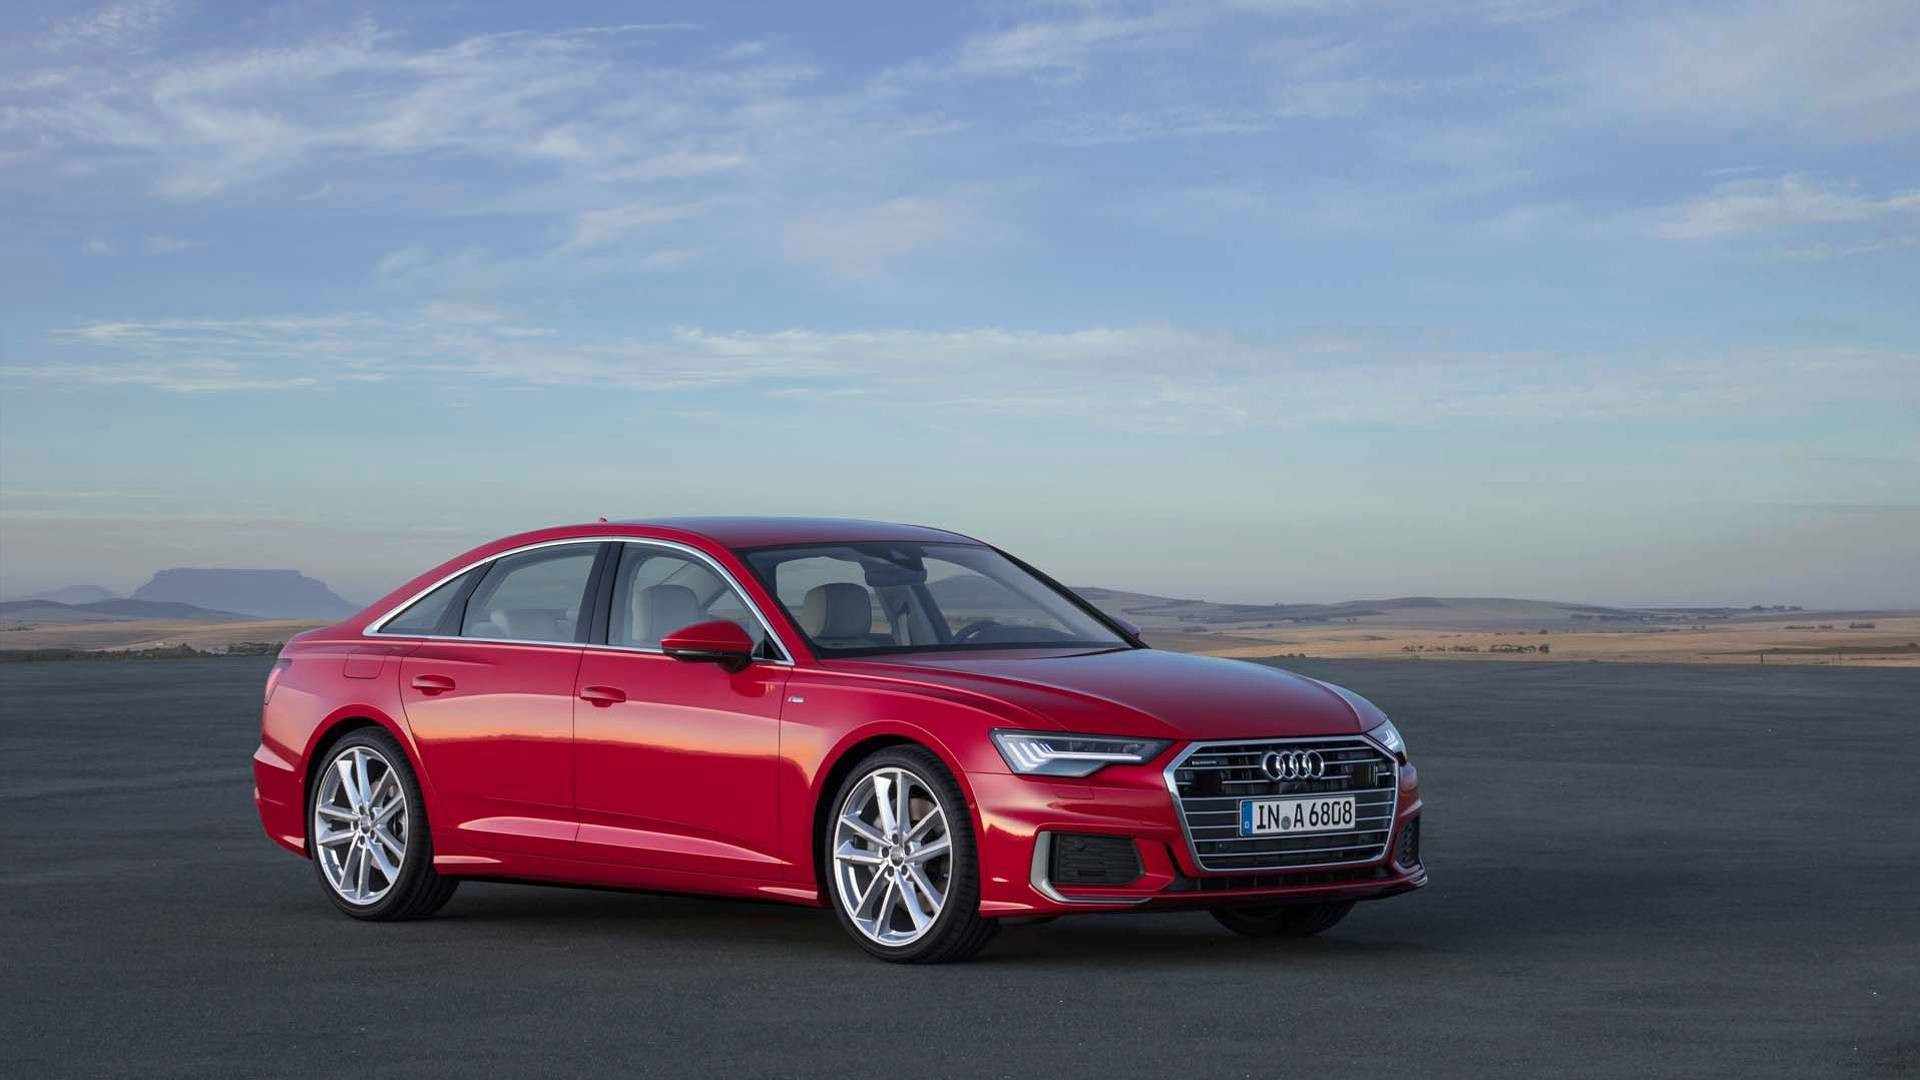 2019 Audi A6 Starts At 58900 Offers Tons Of Tech On Higher Grades